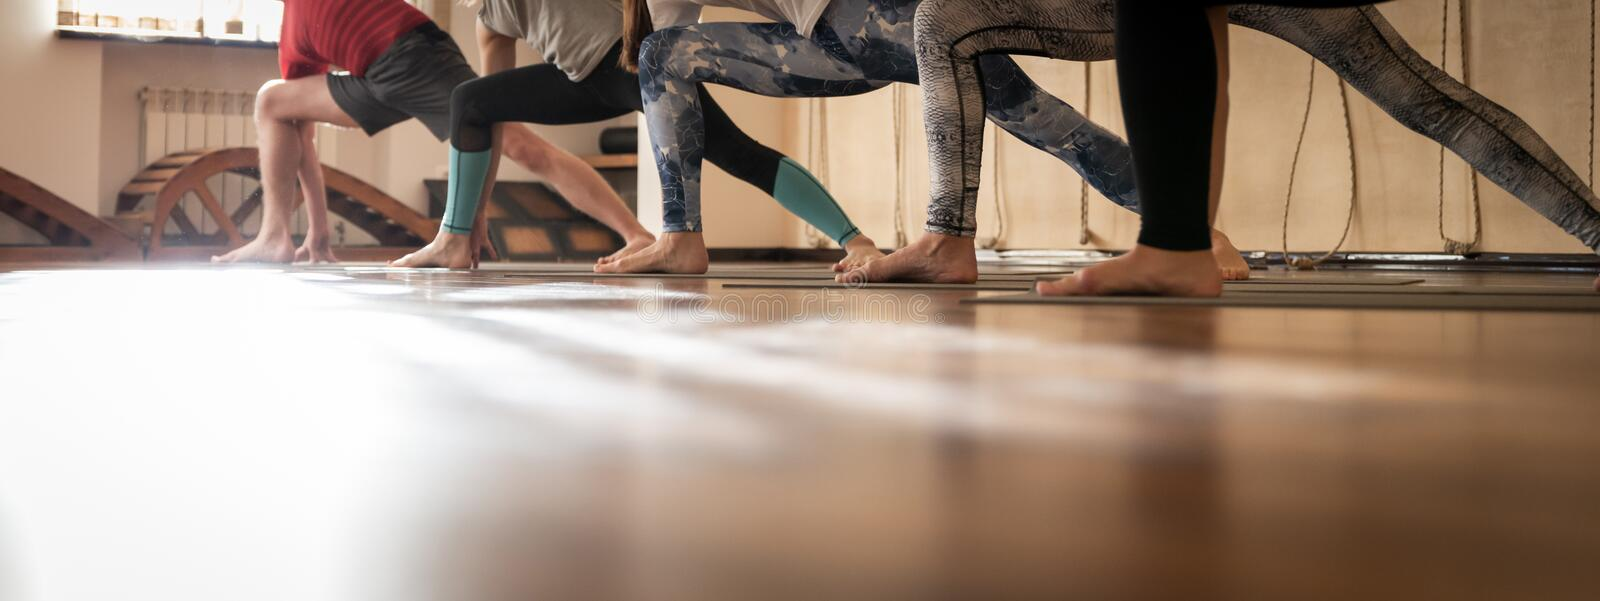 Aerobic Pilates in a gym, group class in a row stock images